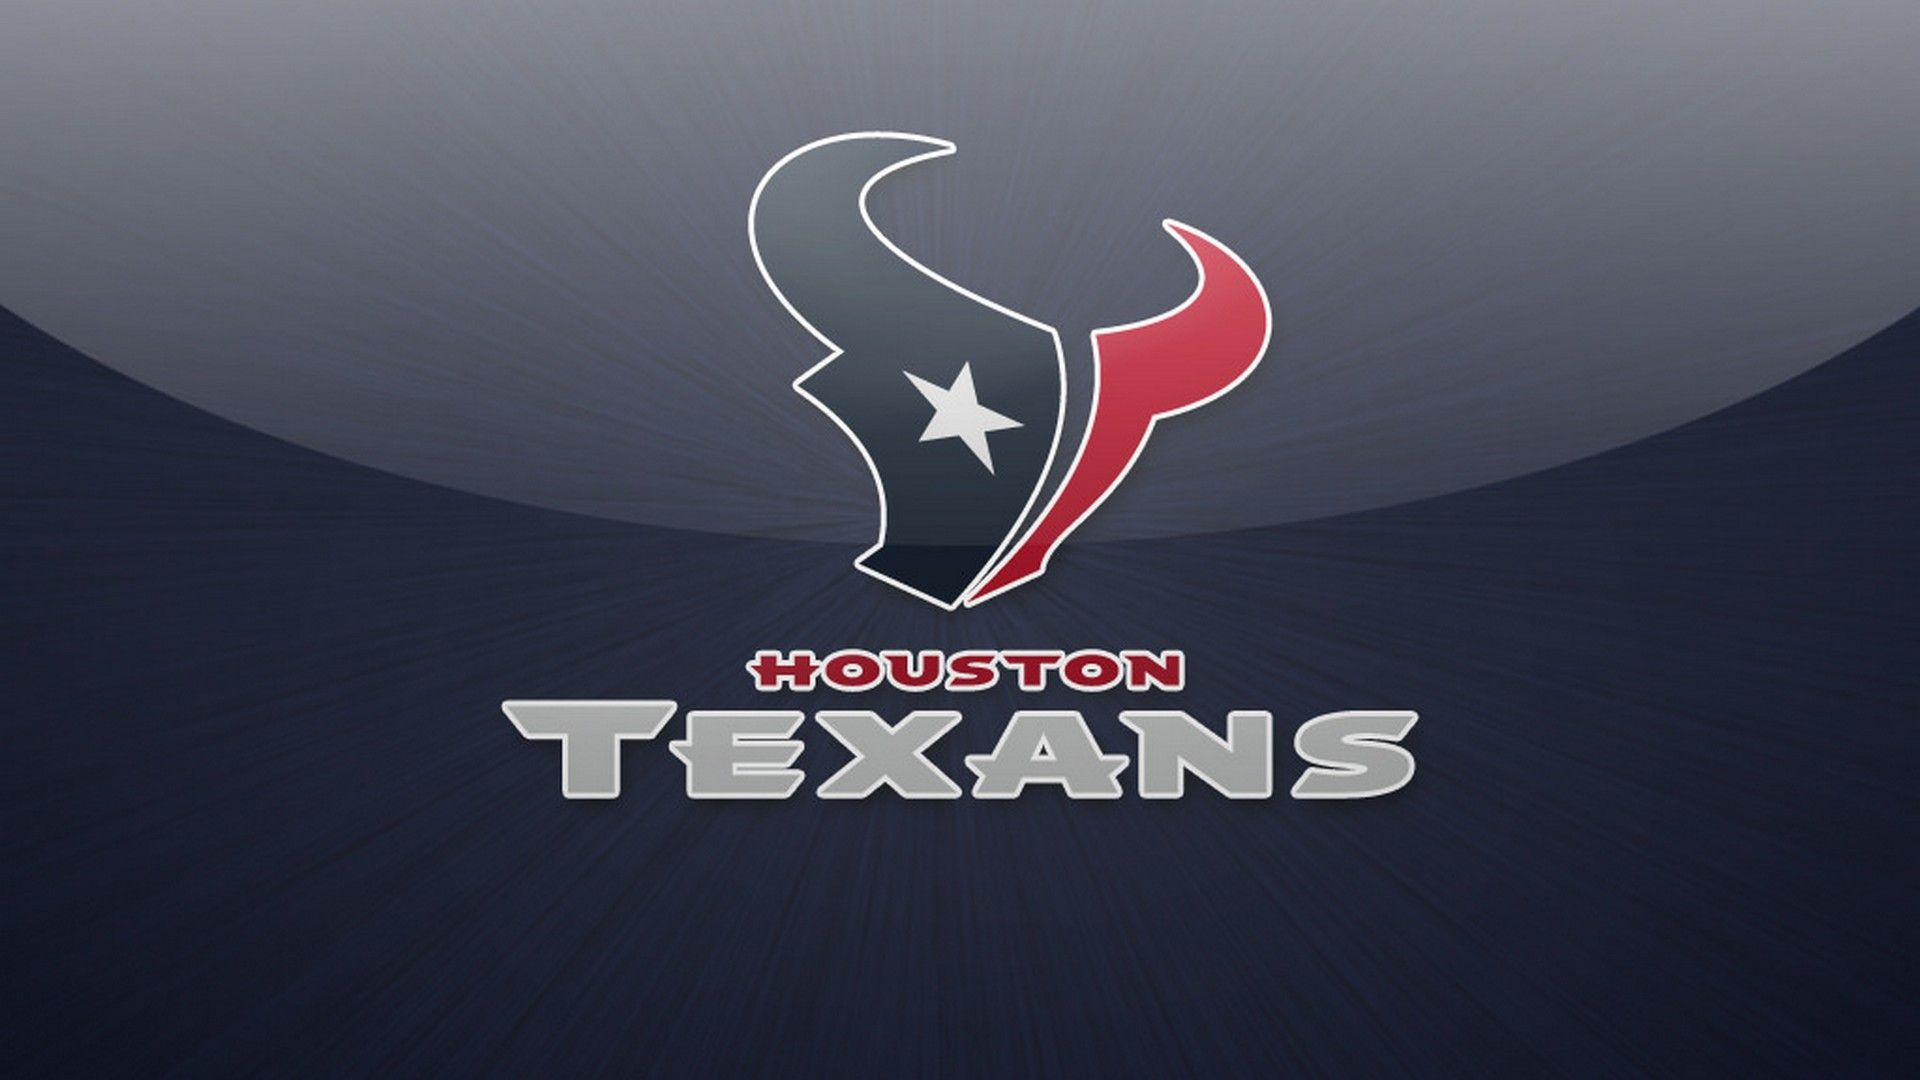 Wallpapers HD Houston Texans Wallpapers Houston texans Texans 1920x1080